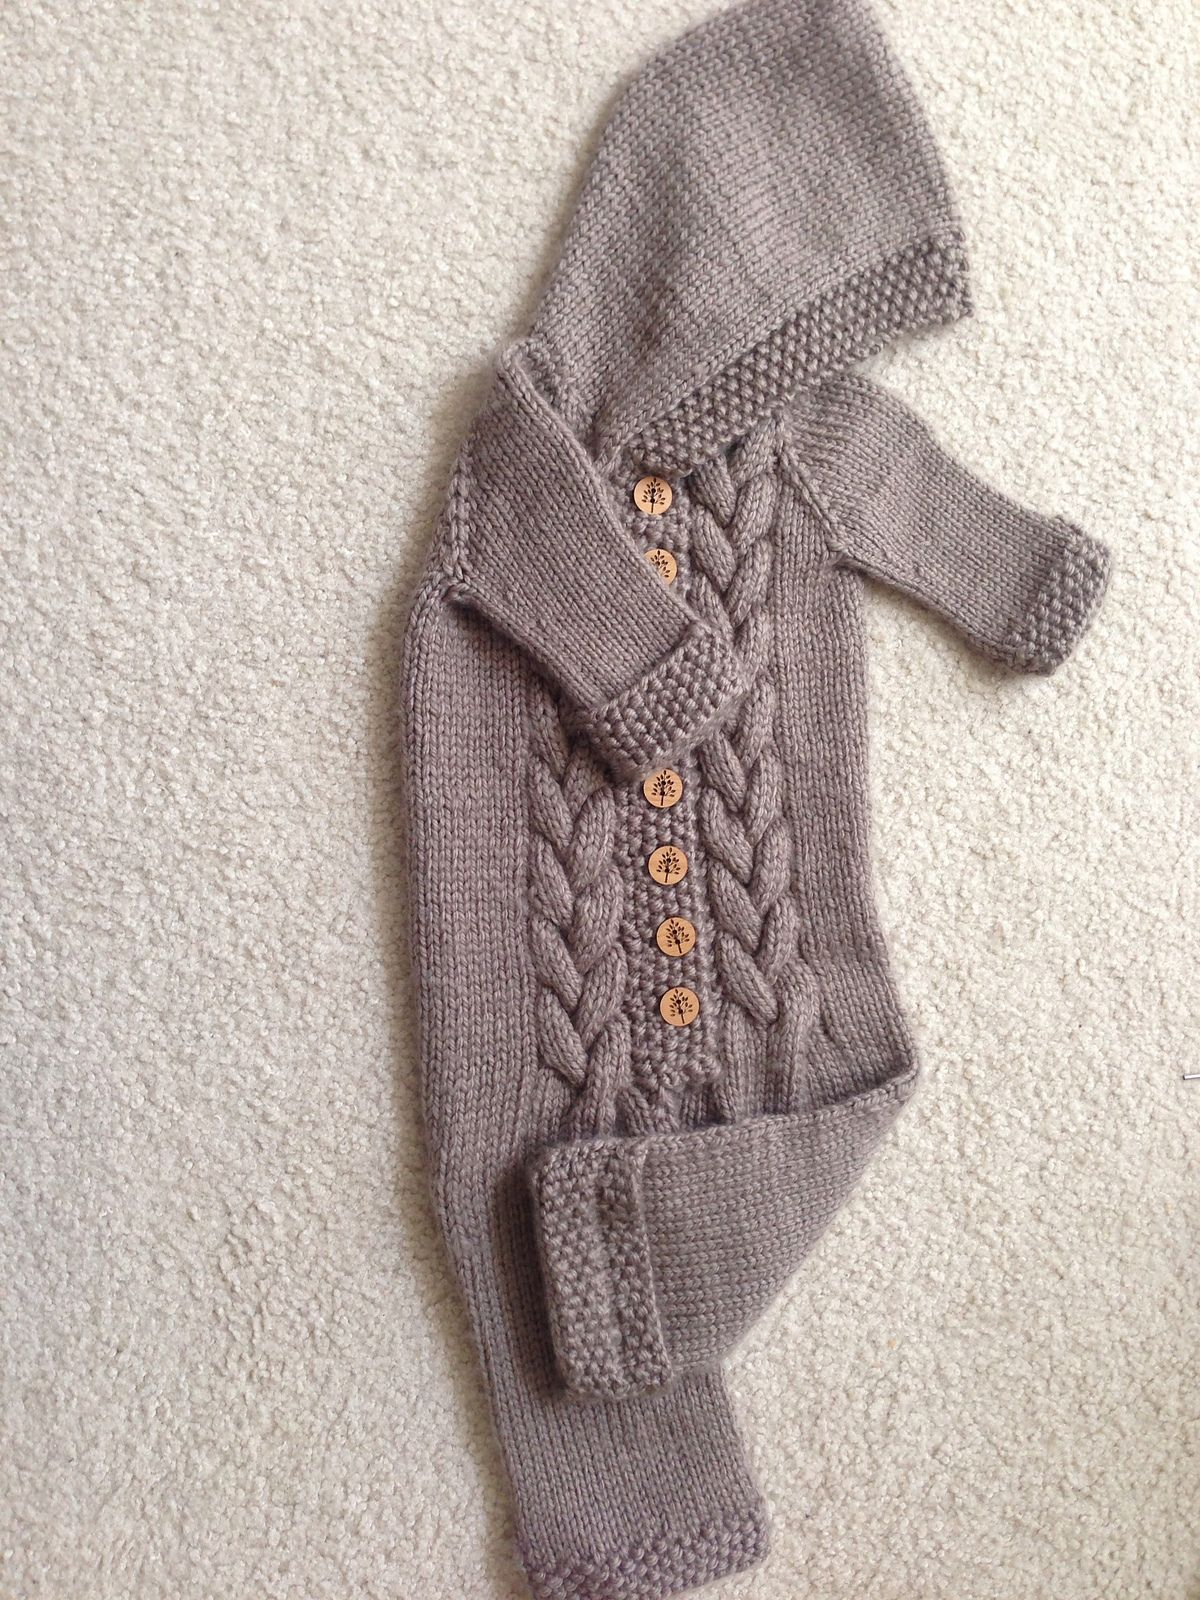 Ravelry Top Down Baby Bunting by Amanda Lilley Baby